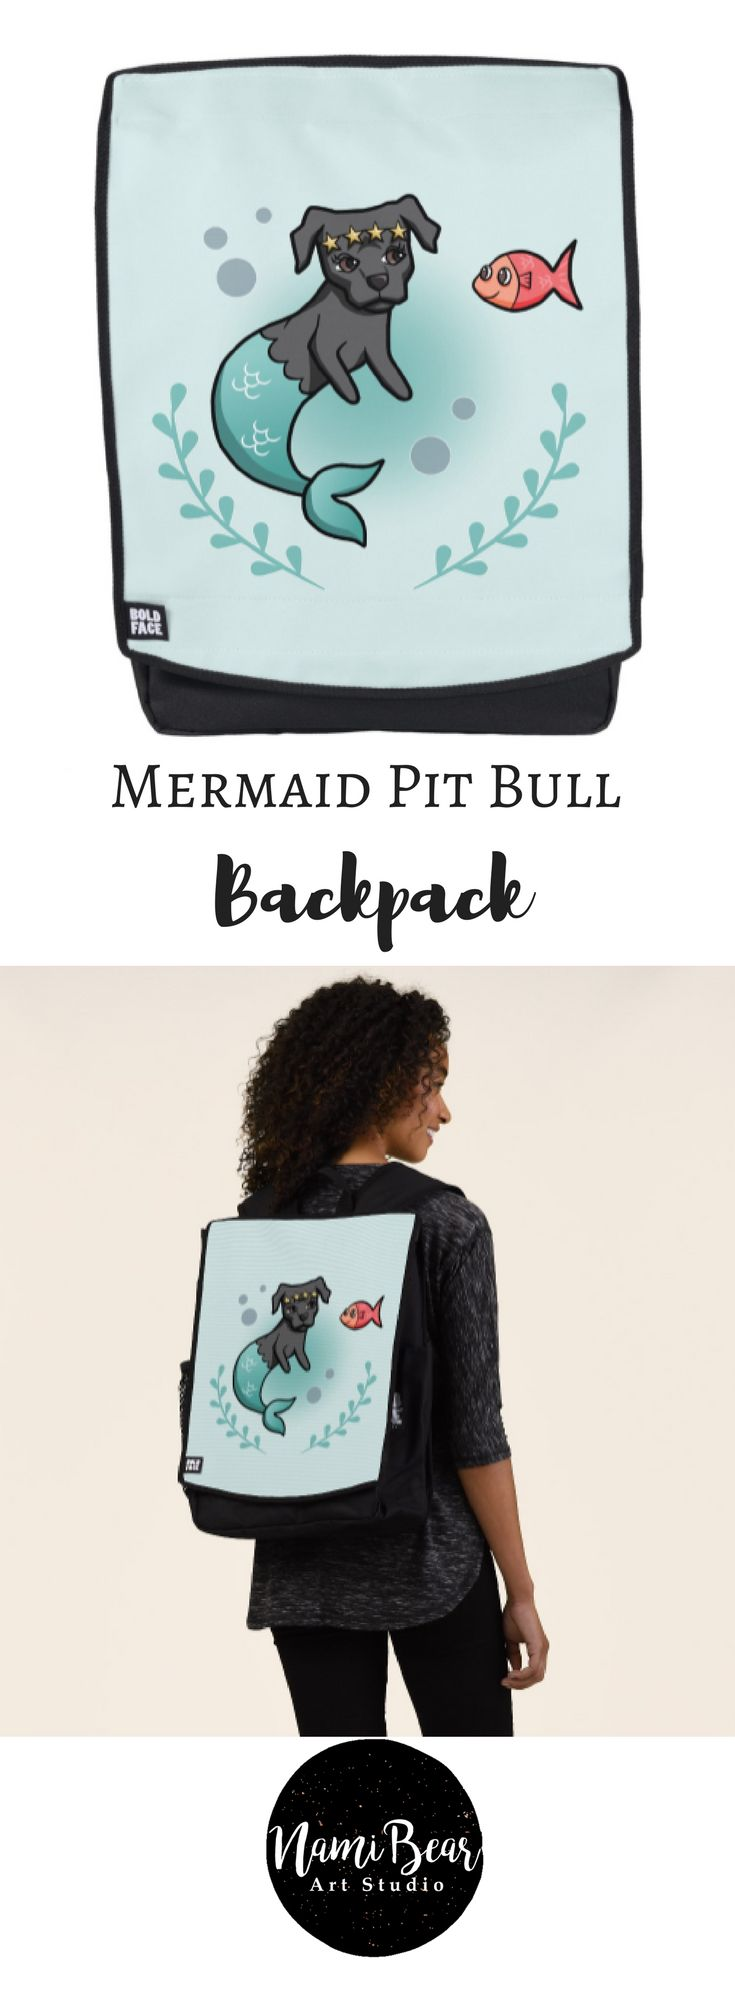 Mermaid Pit Bull Backpack This is a vector illustration of a mermaid pit bull and her little fish friend. The mermaid dog has a star crown on her head. There is a seaweed wreath at the bottom. #dog #dogs #dogLovers #whimsical #mermaid #ocean #sea #cartoon #pitbull #pitbulls #pet #pets #illustrations #illustration #gift #gifts #giftideas #giftforher #animal #animals #kids #children